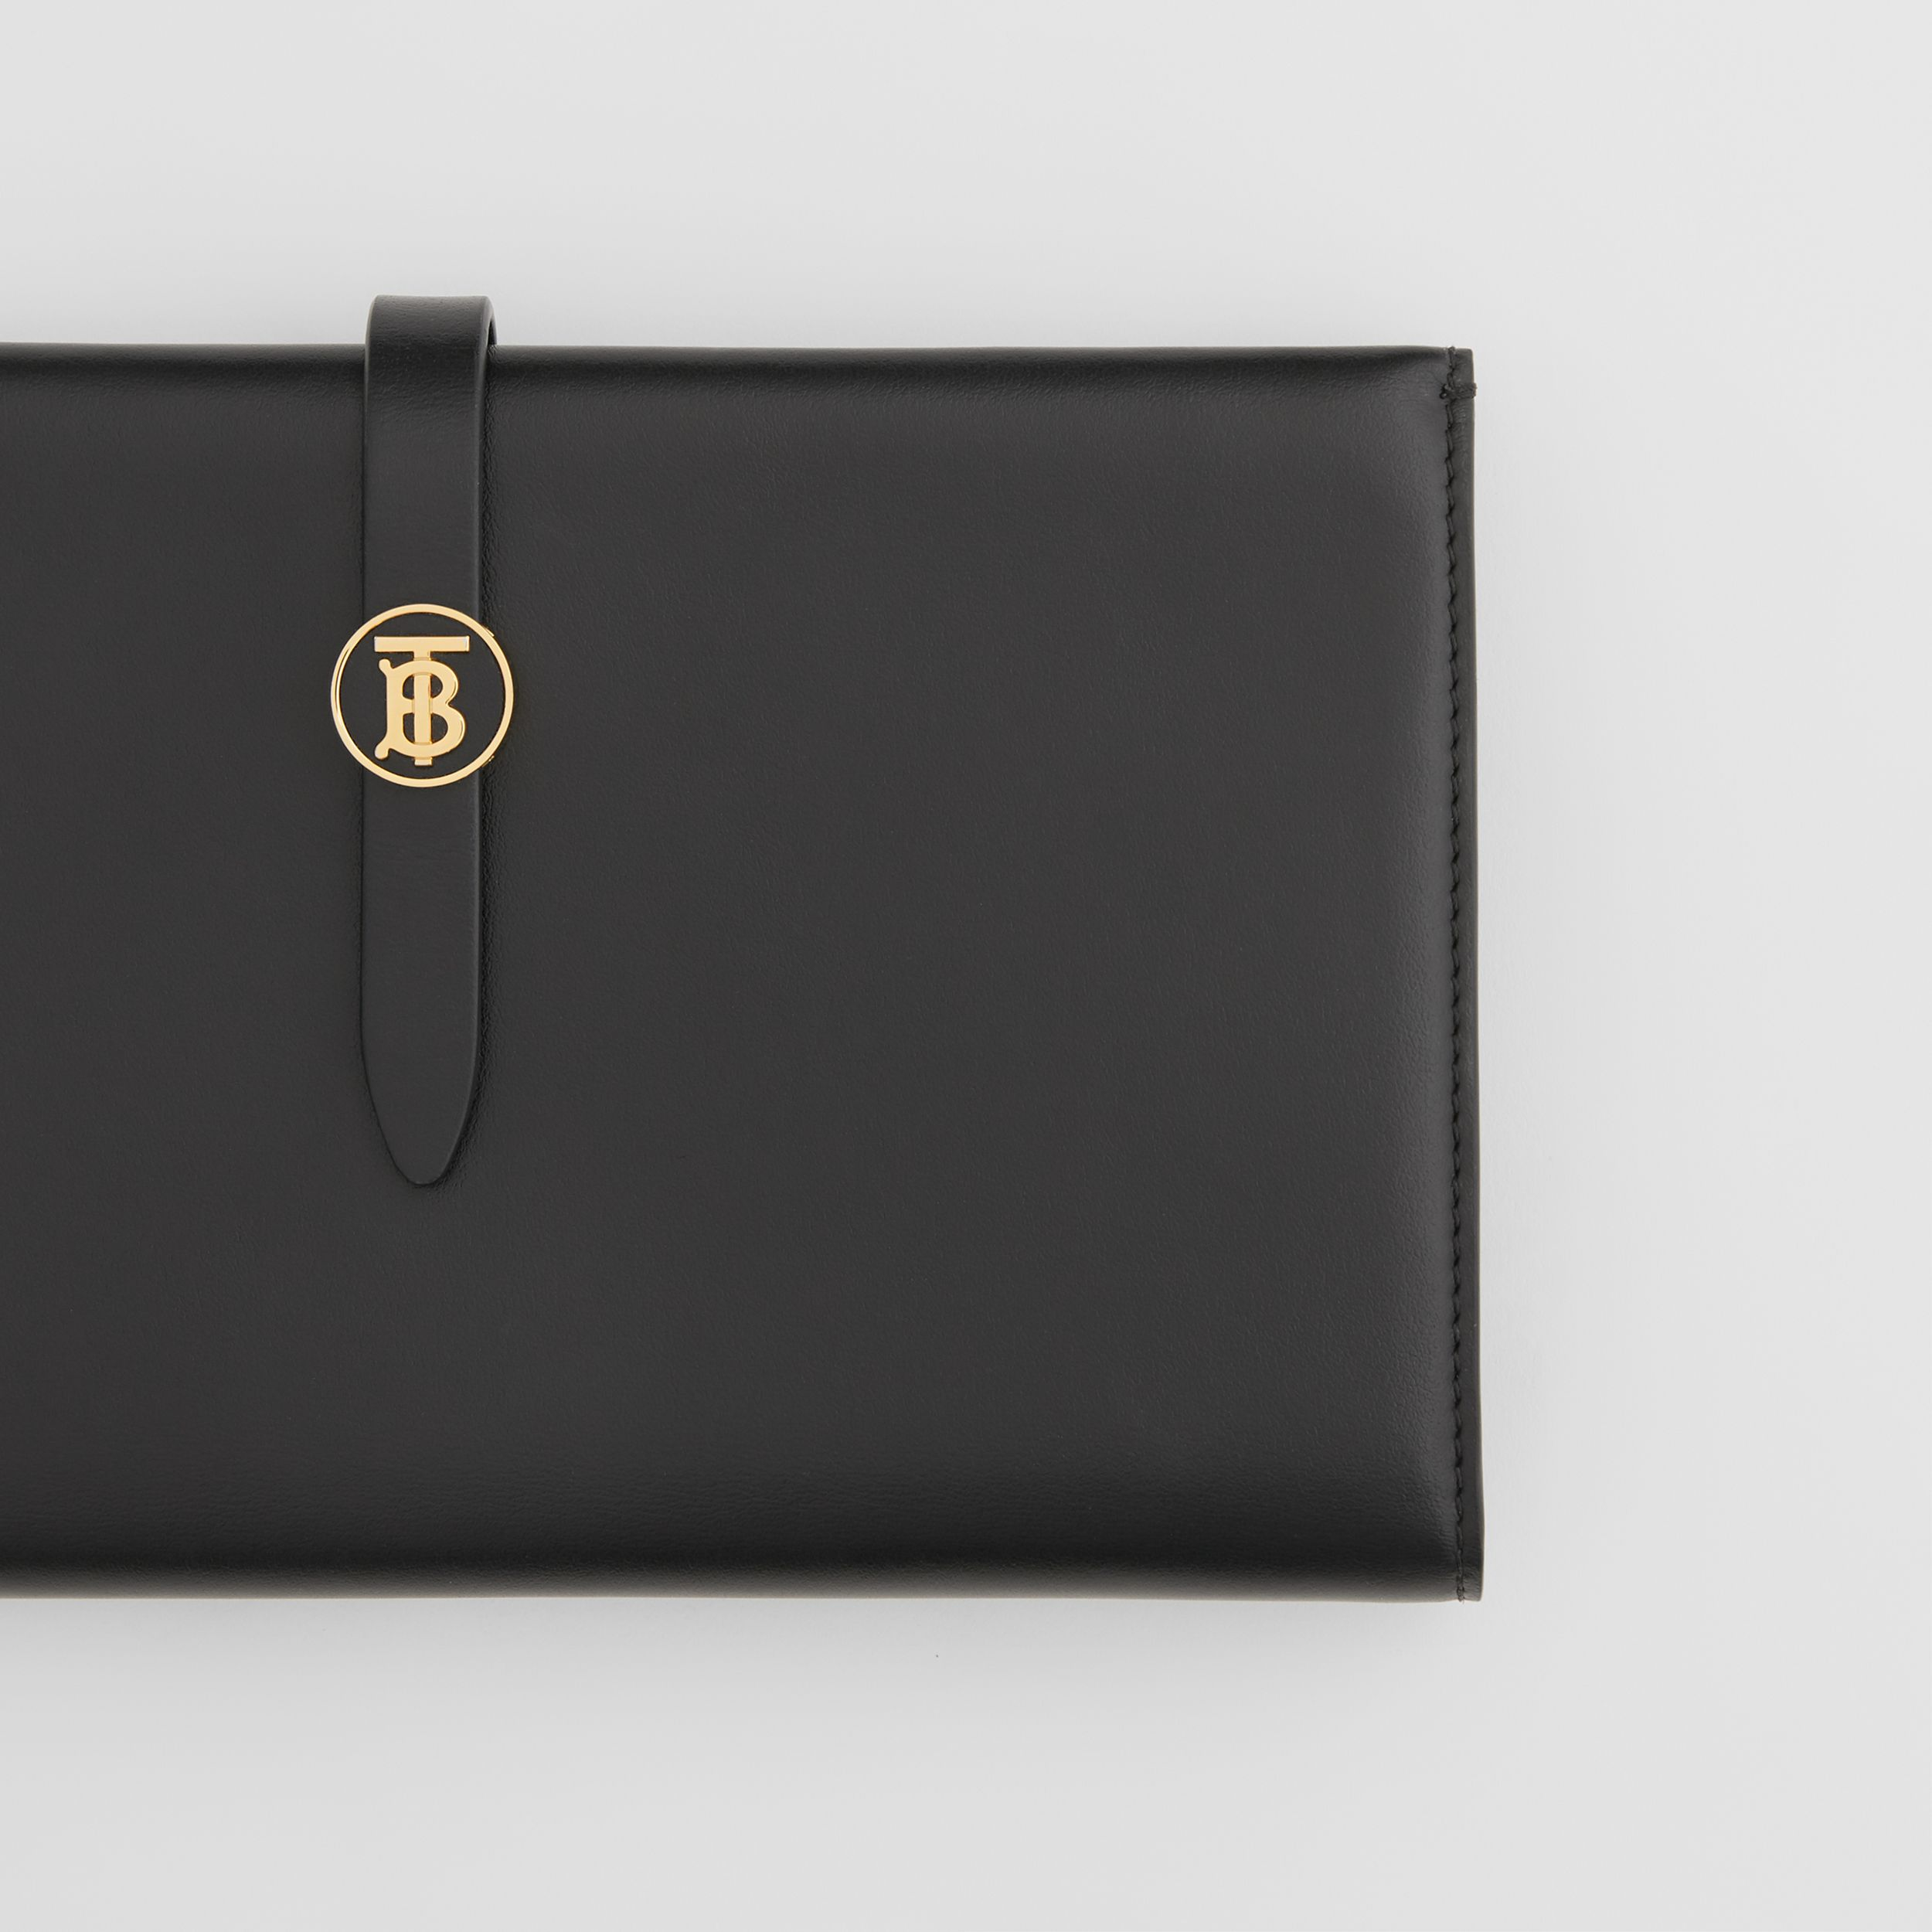 Large Monogram Motif Leather Folding Wallet in Black - Women | Burberry - 2